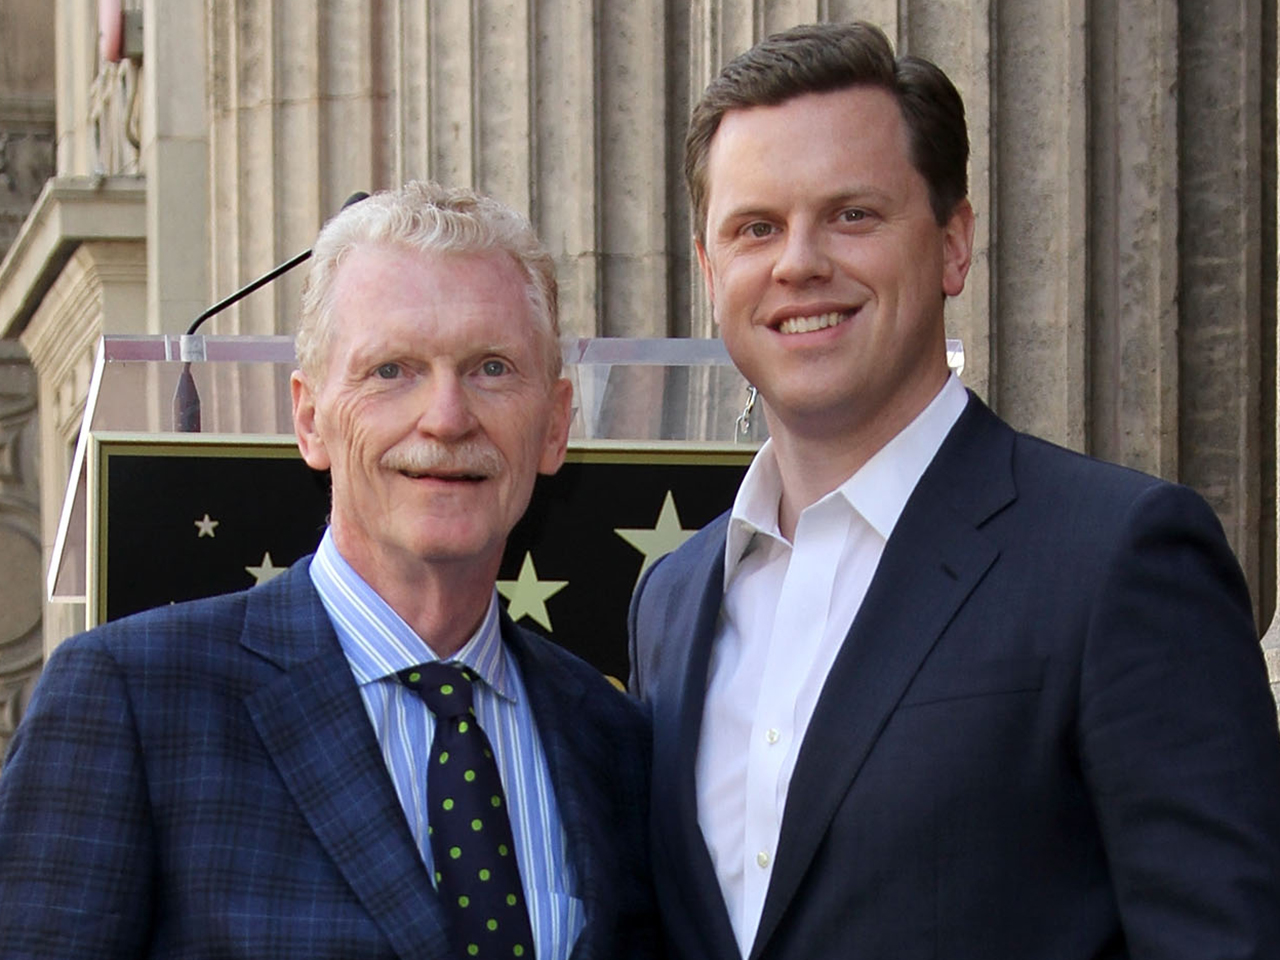 Willie Geist: What my father has given me - TODAY.com